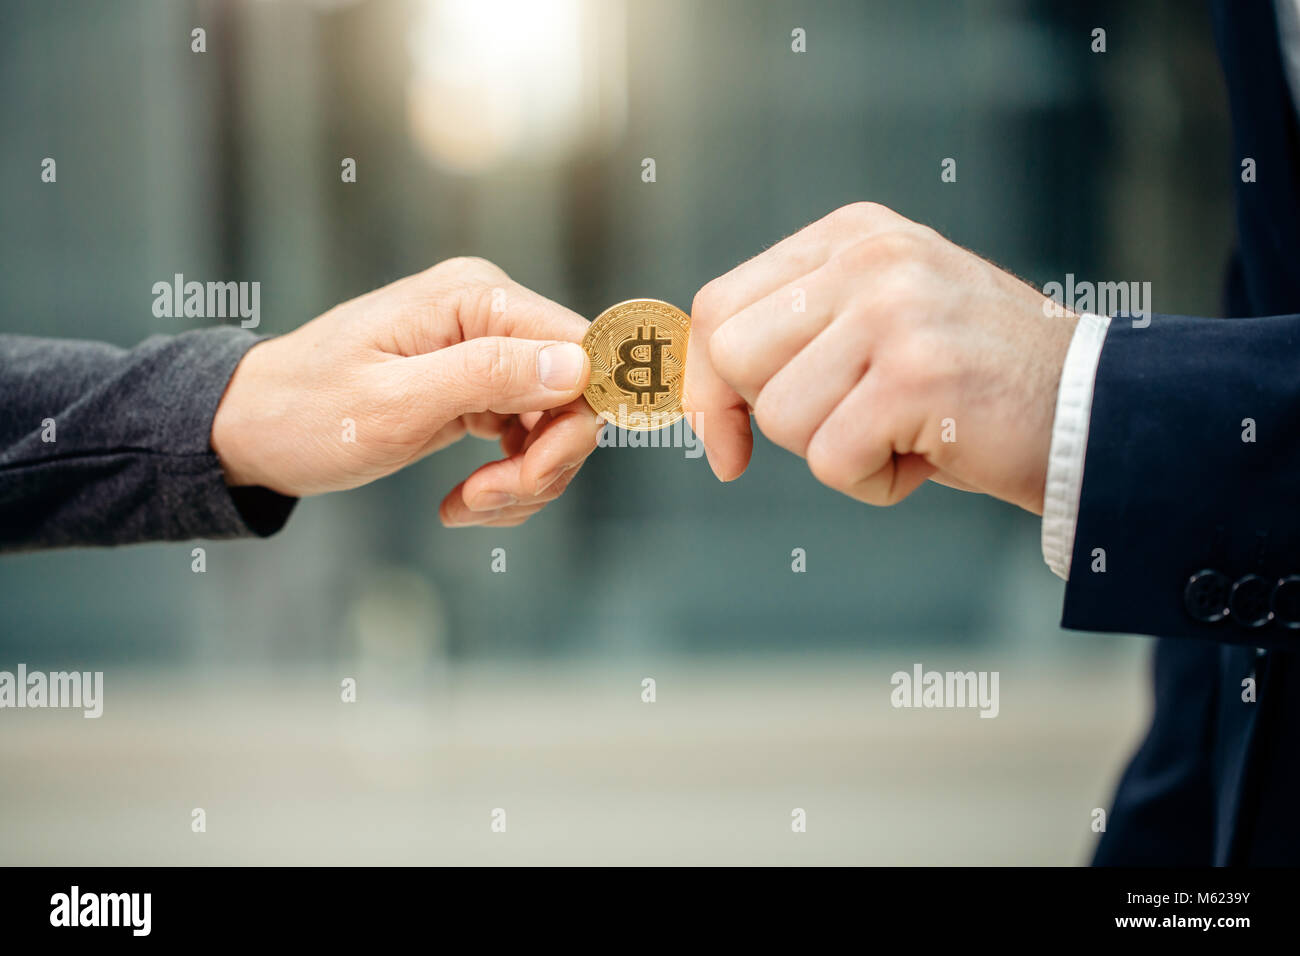 Giving a bit coin cryptocurrency philanthropy